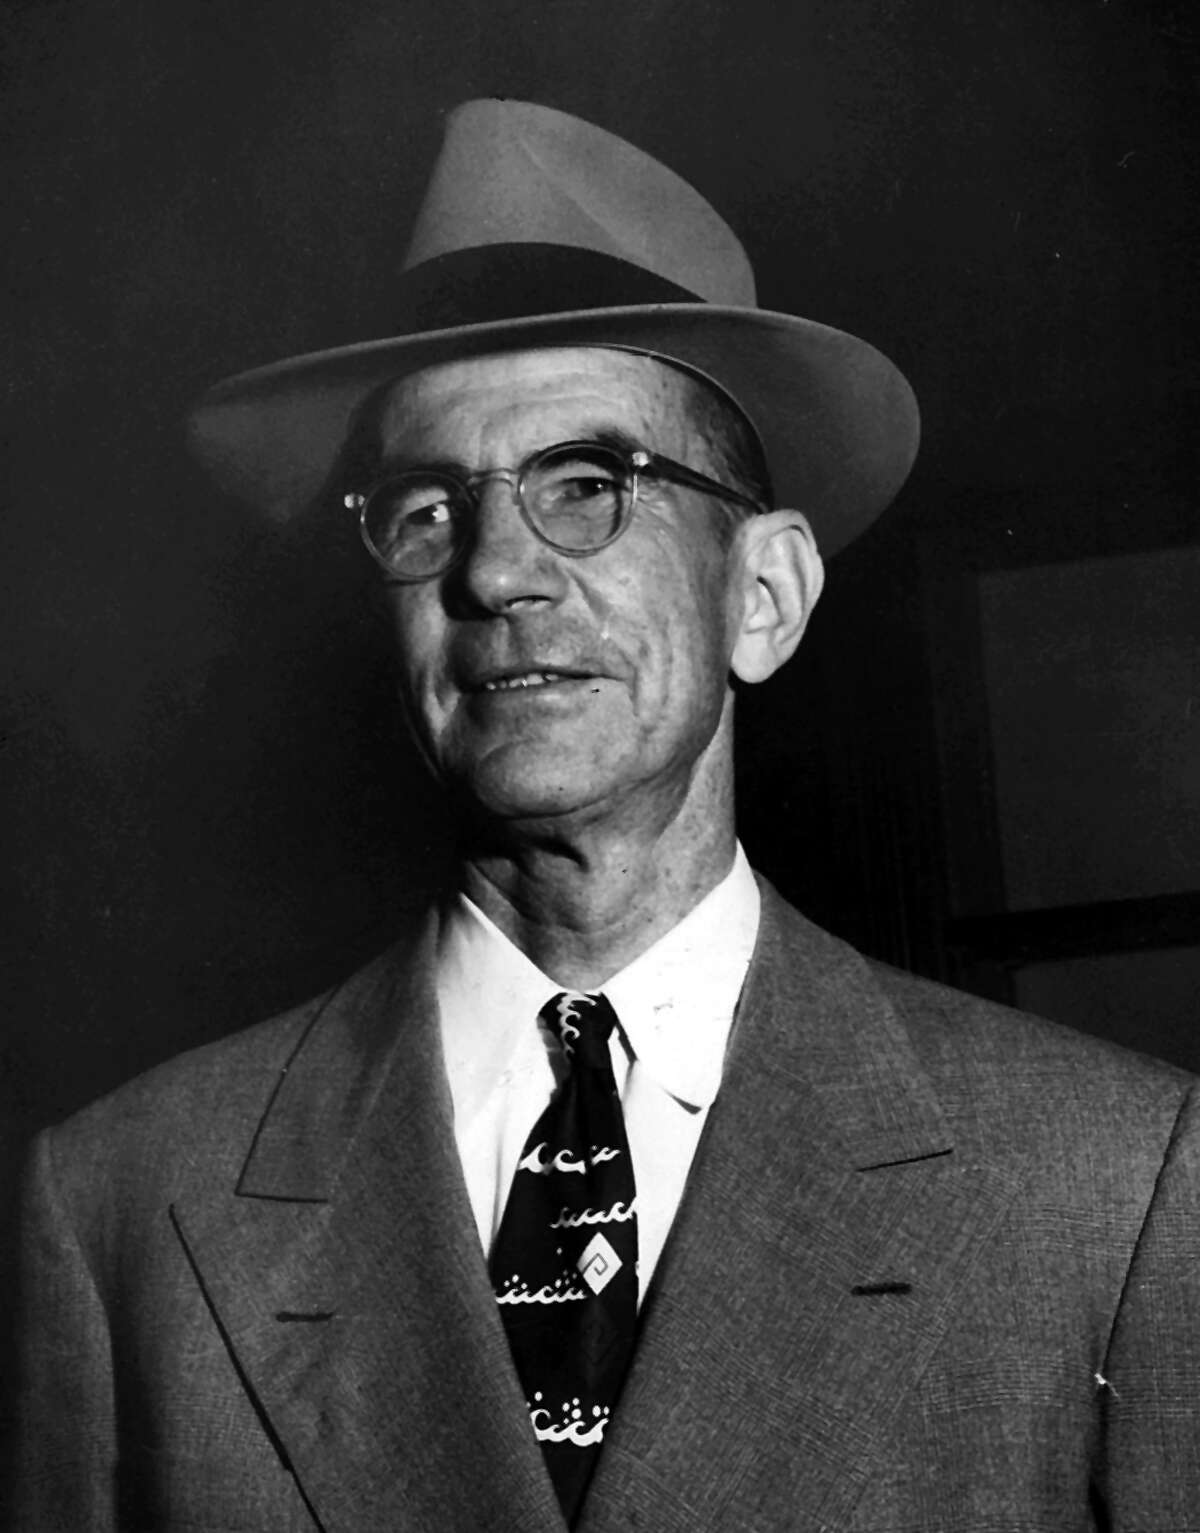 H. B. Zachry photographed in 1958.